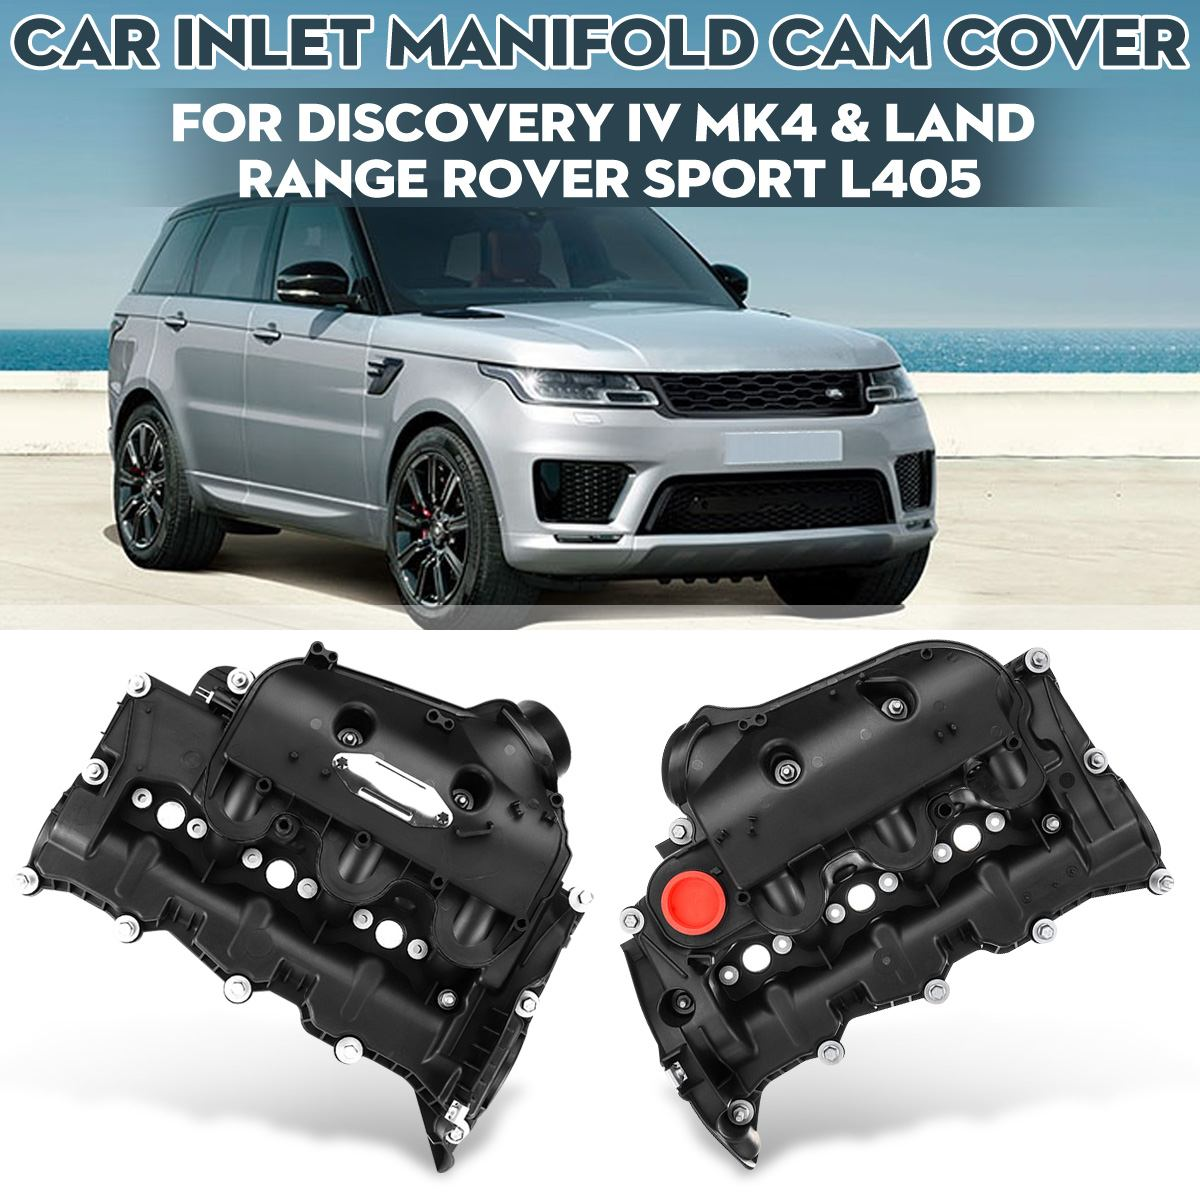 Car Inlet Manifold Cam Cover Engine Valve Cover LR116732 LR105957 For Land Rover Discovery 4 Mk4 3.0 & Range Rover Sport 3.0 Mk